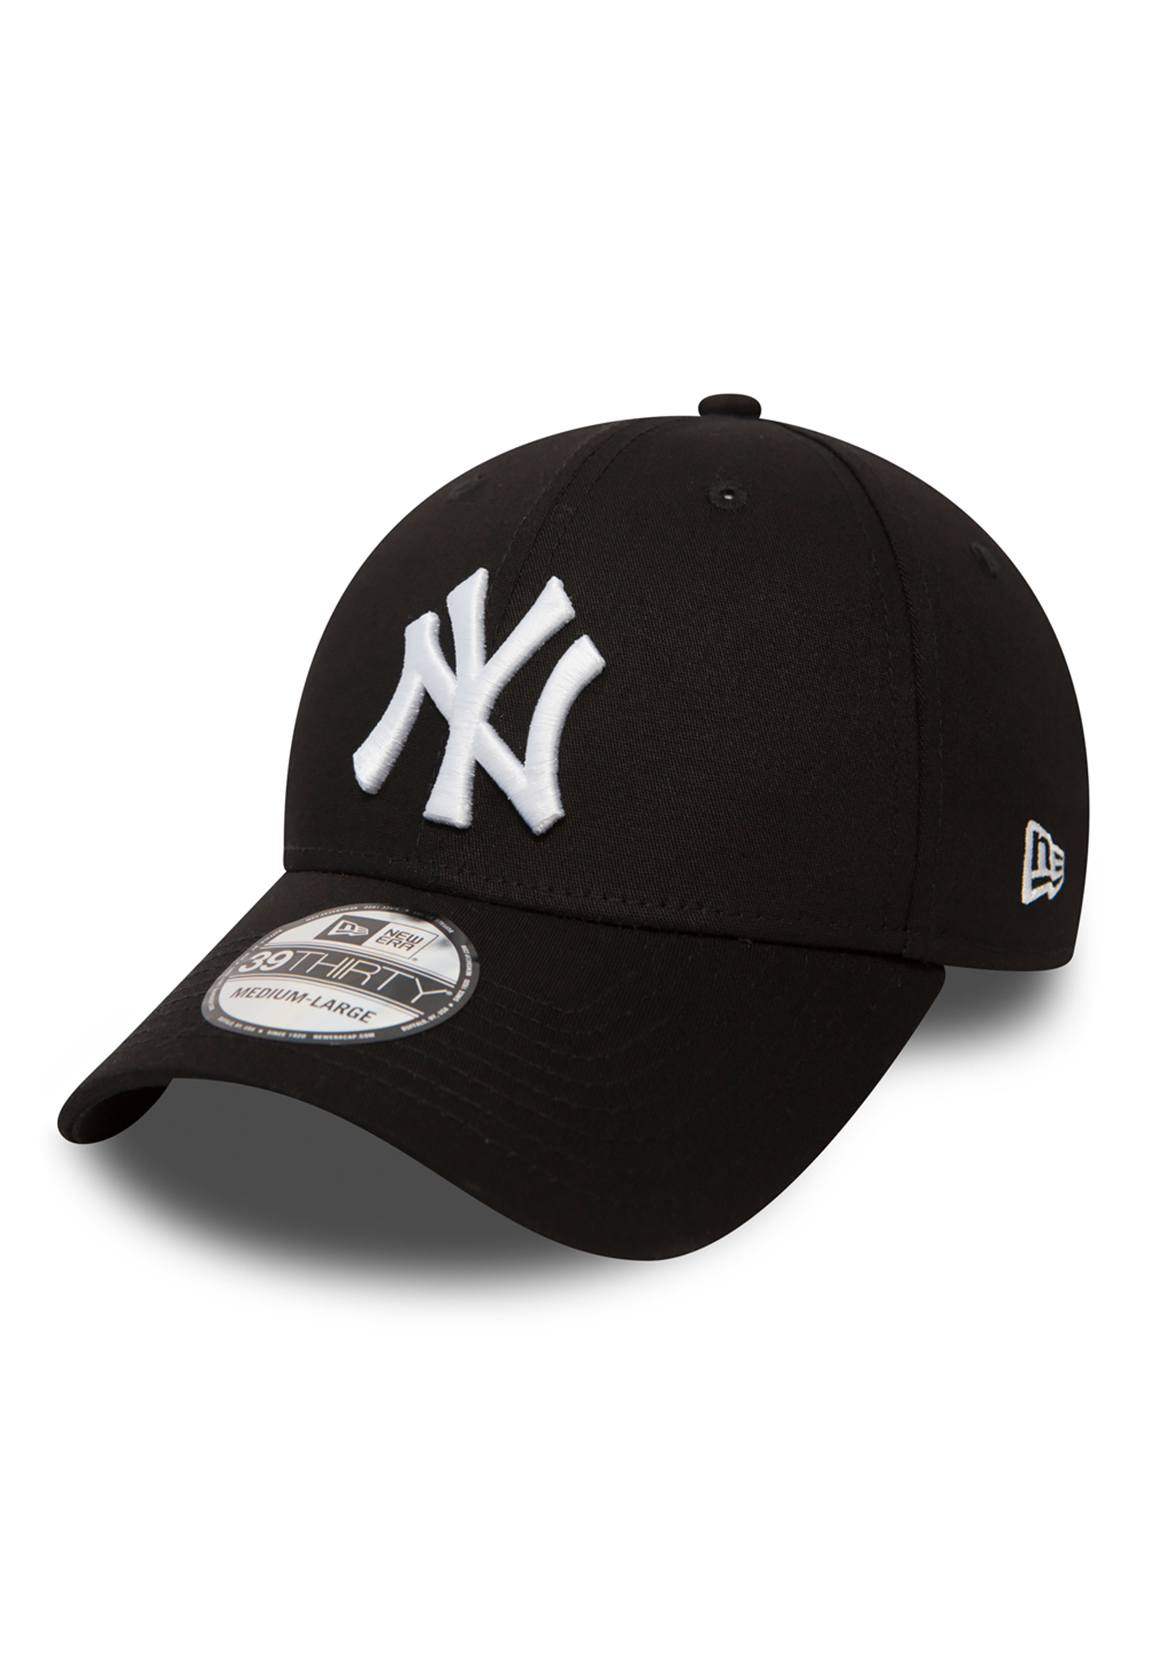 a9e9c8497 Details about New Era 39Thirty League Cap - Ny Yankees - Black-White